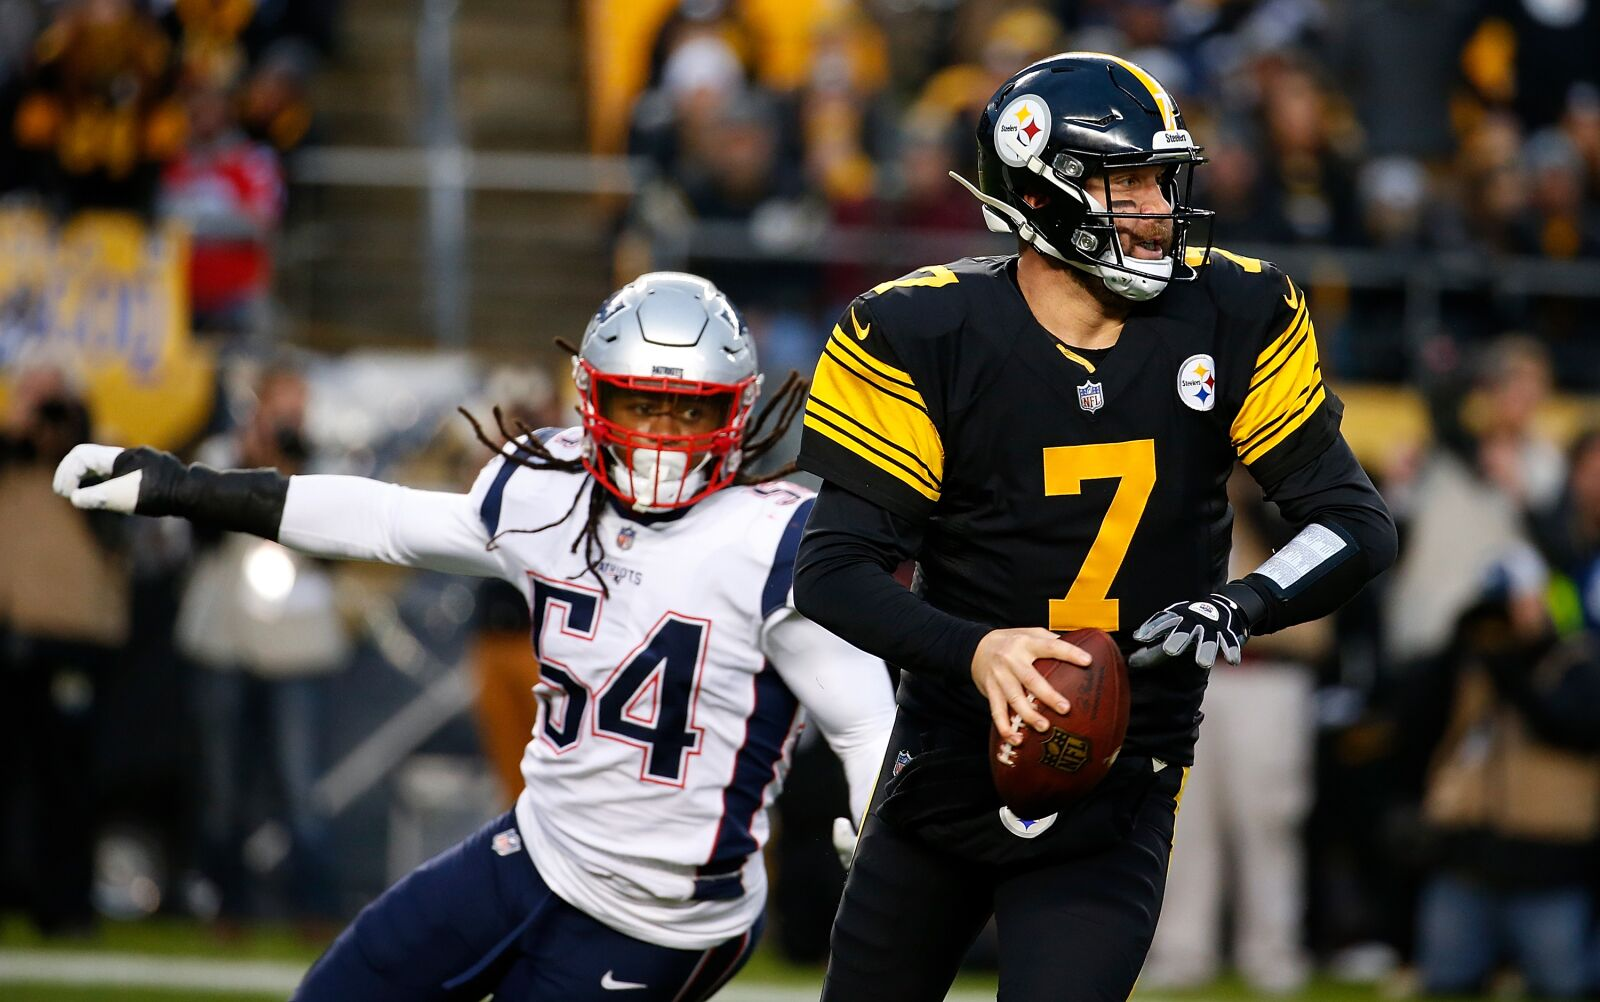 Pittsburgh Steelers given 11th best Super Bowl odds